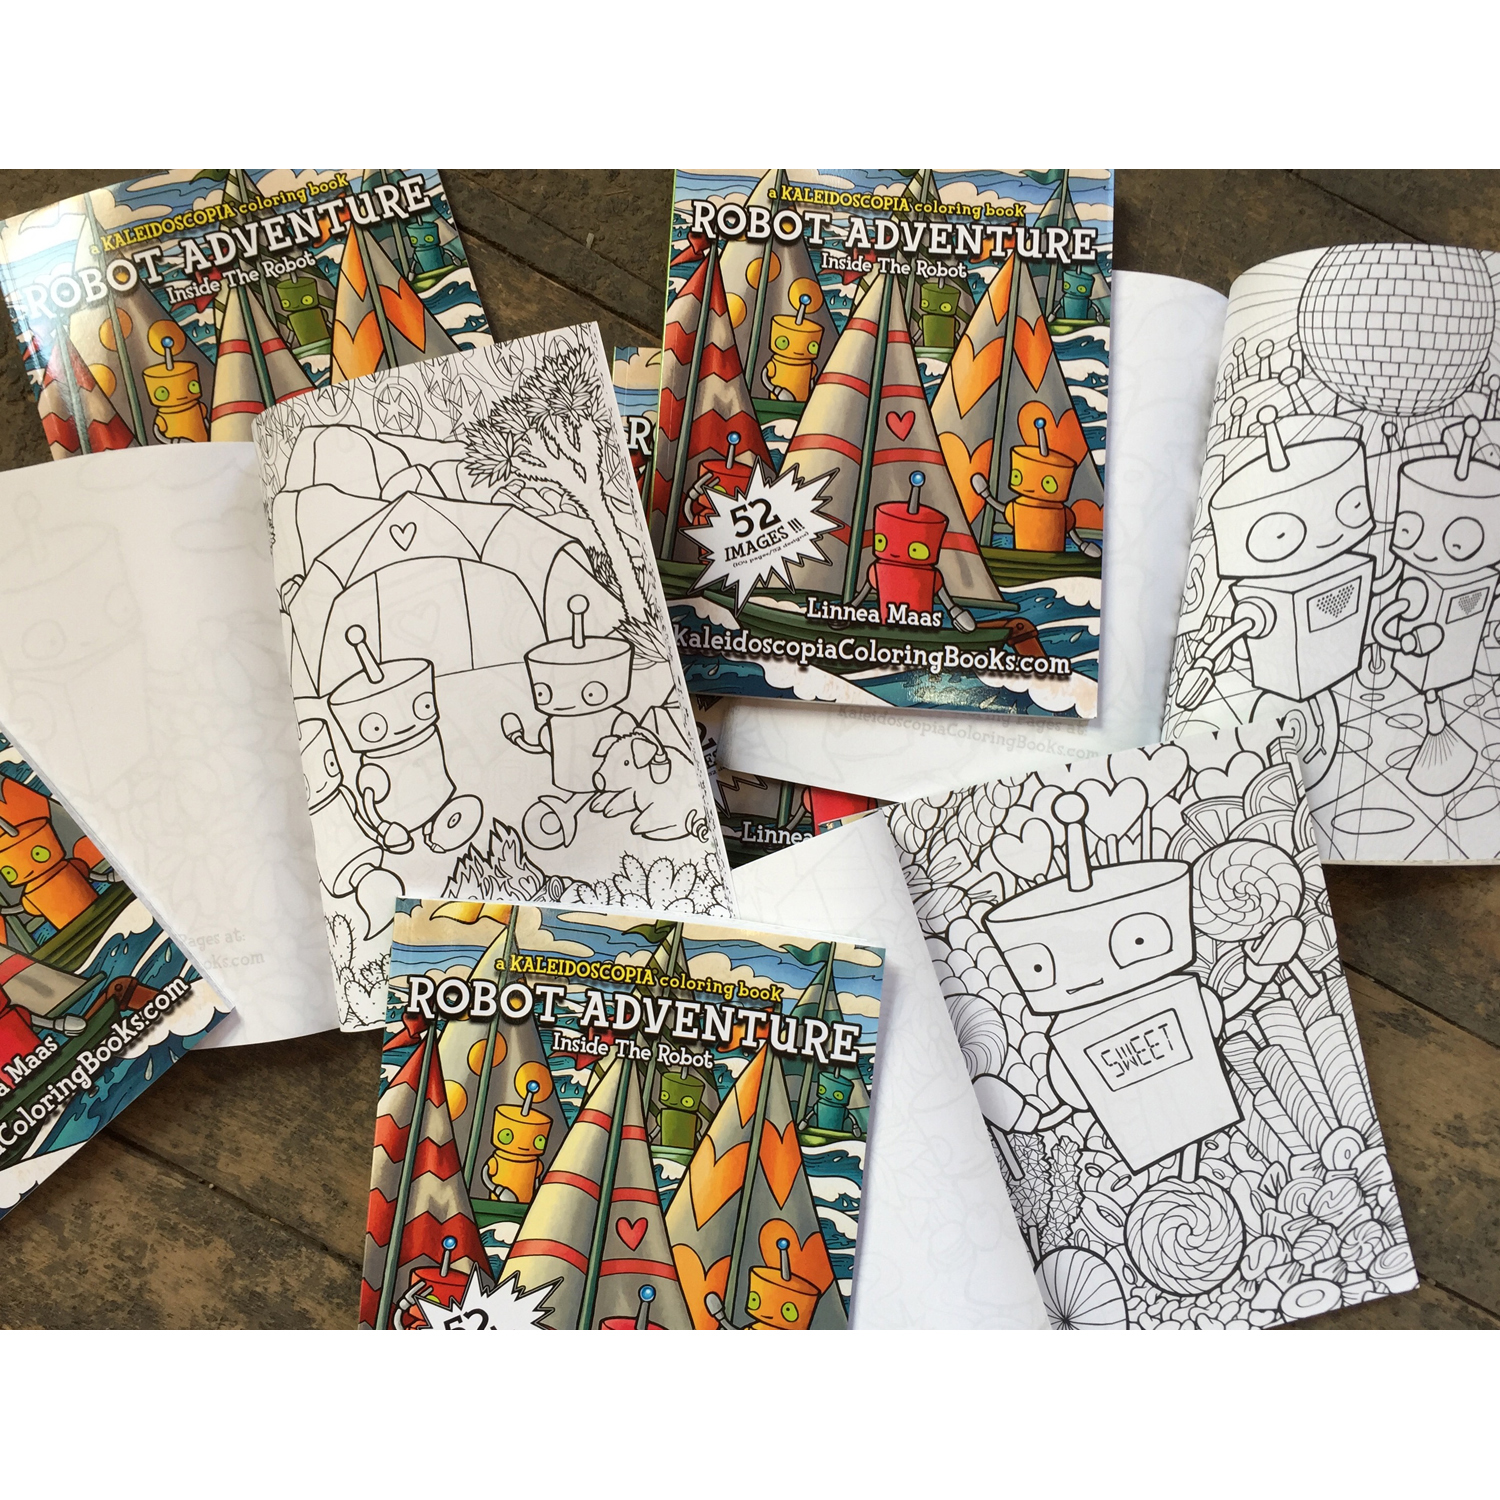 View of coloring books open on the floor, Robot Adventure: Insid